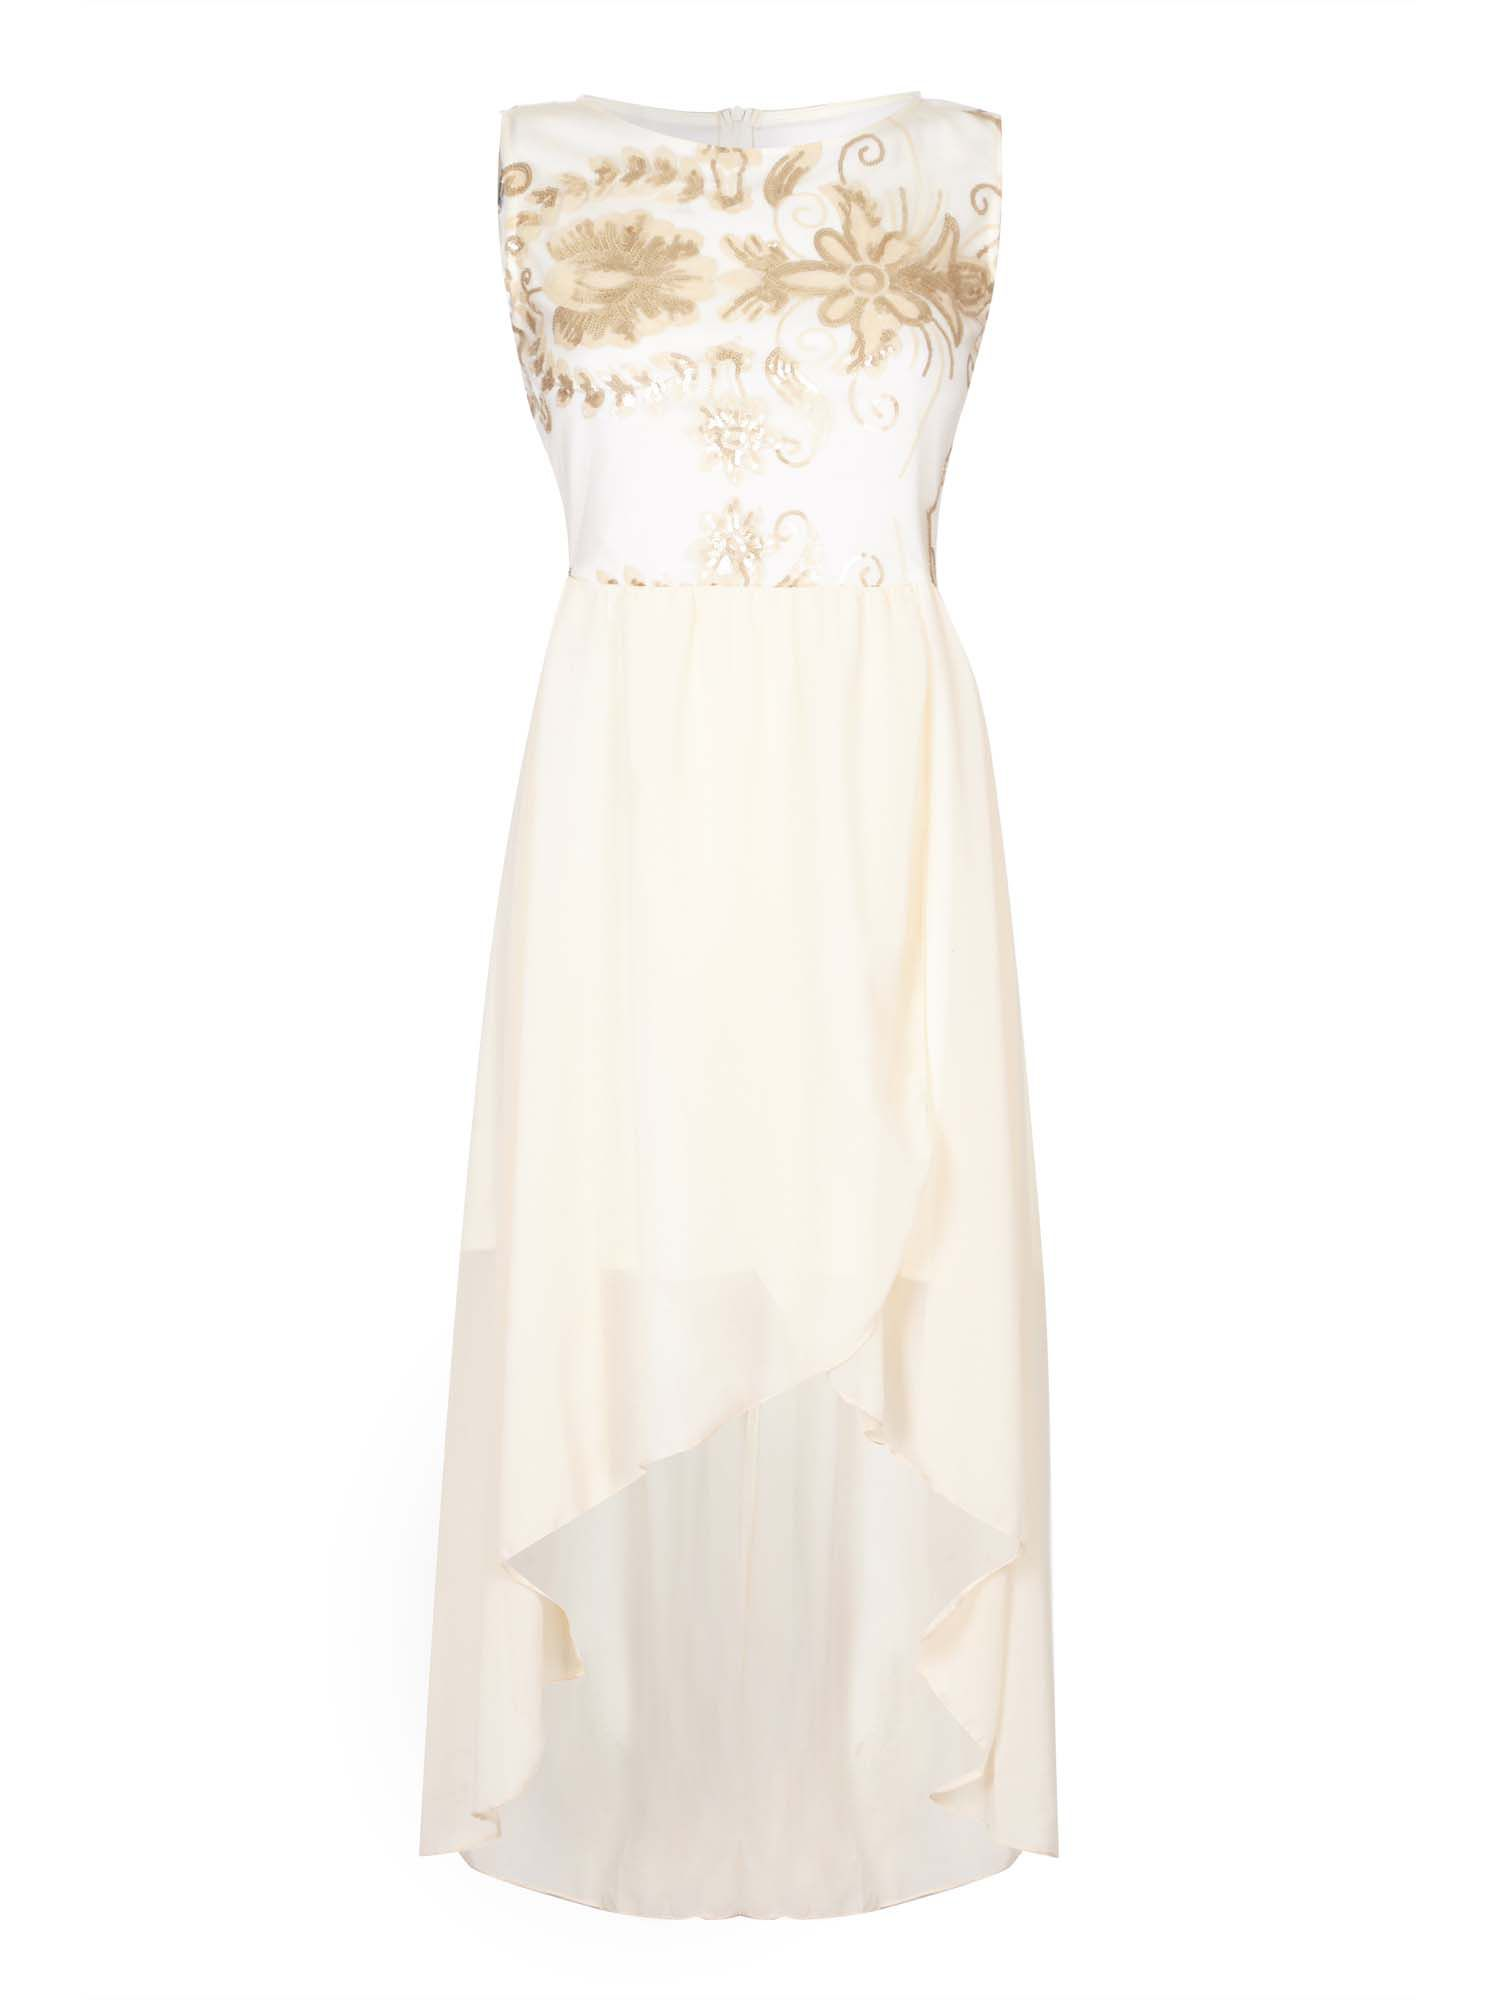 Mela London Sequin Bodice High-Low Party Dress, Cream